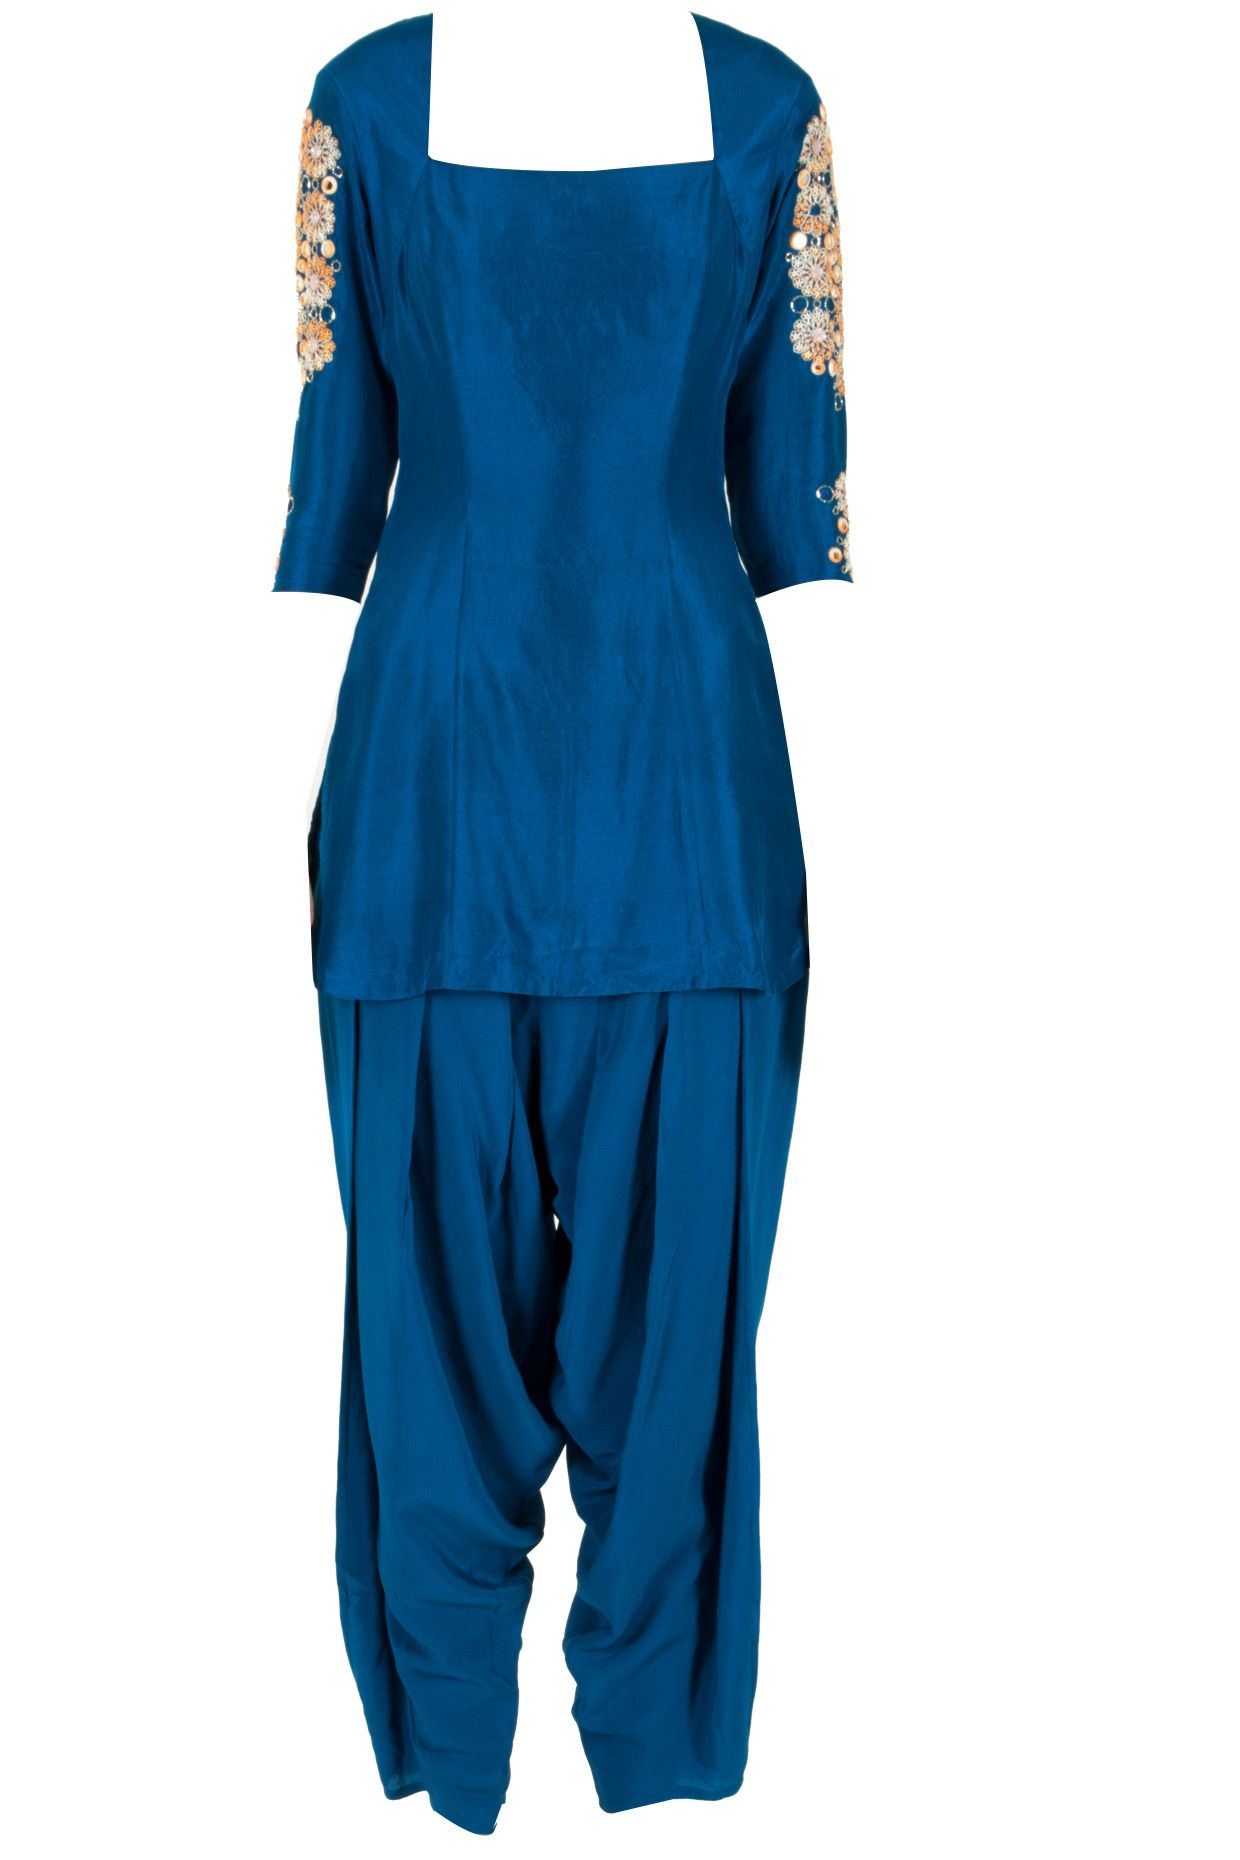 Blue embellished kurta with salwar available only at Pernia's Pop-Up Shop.